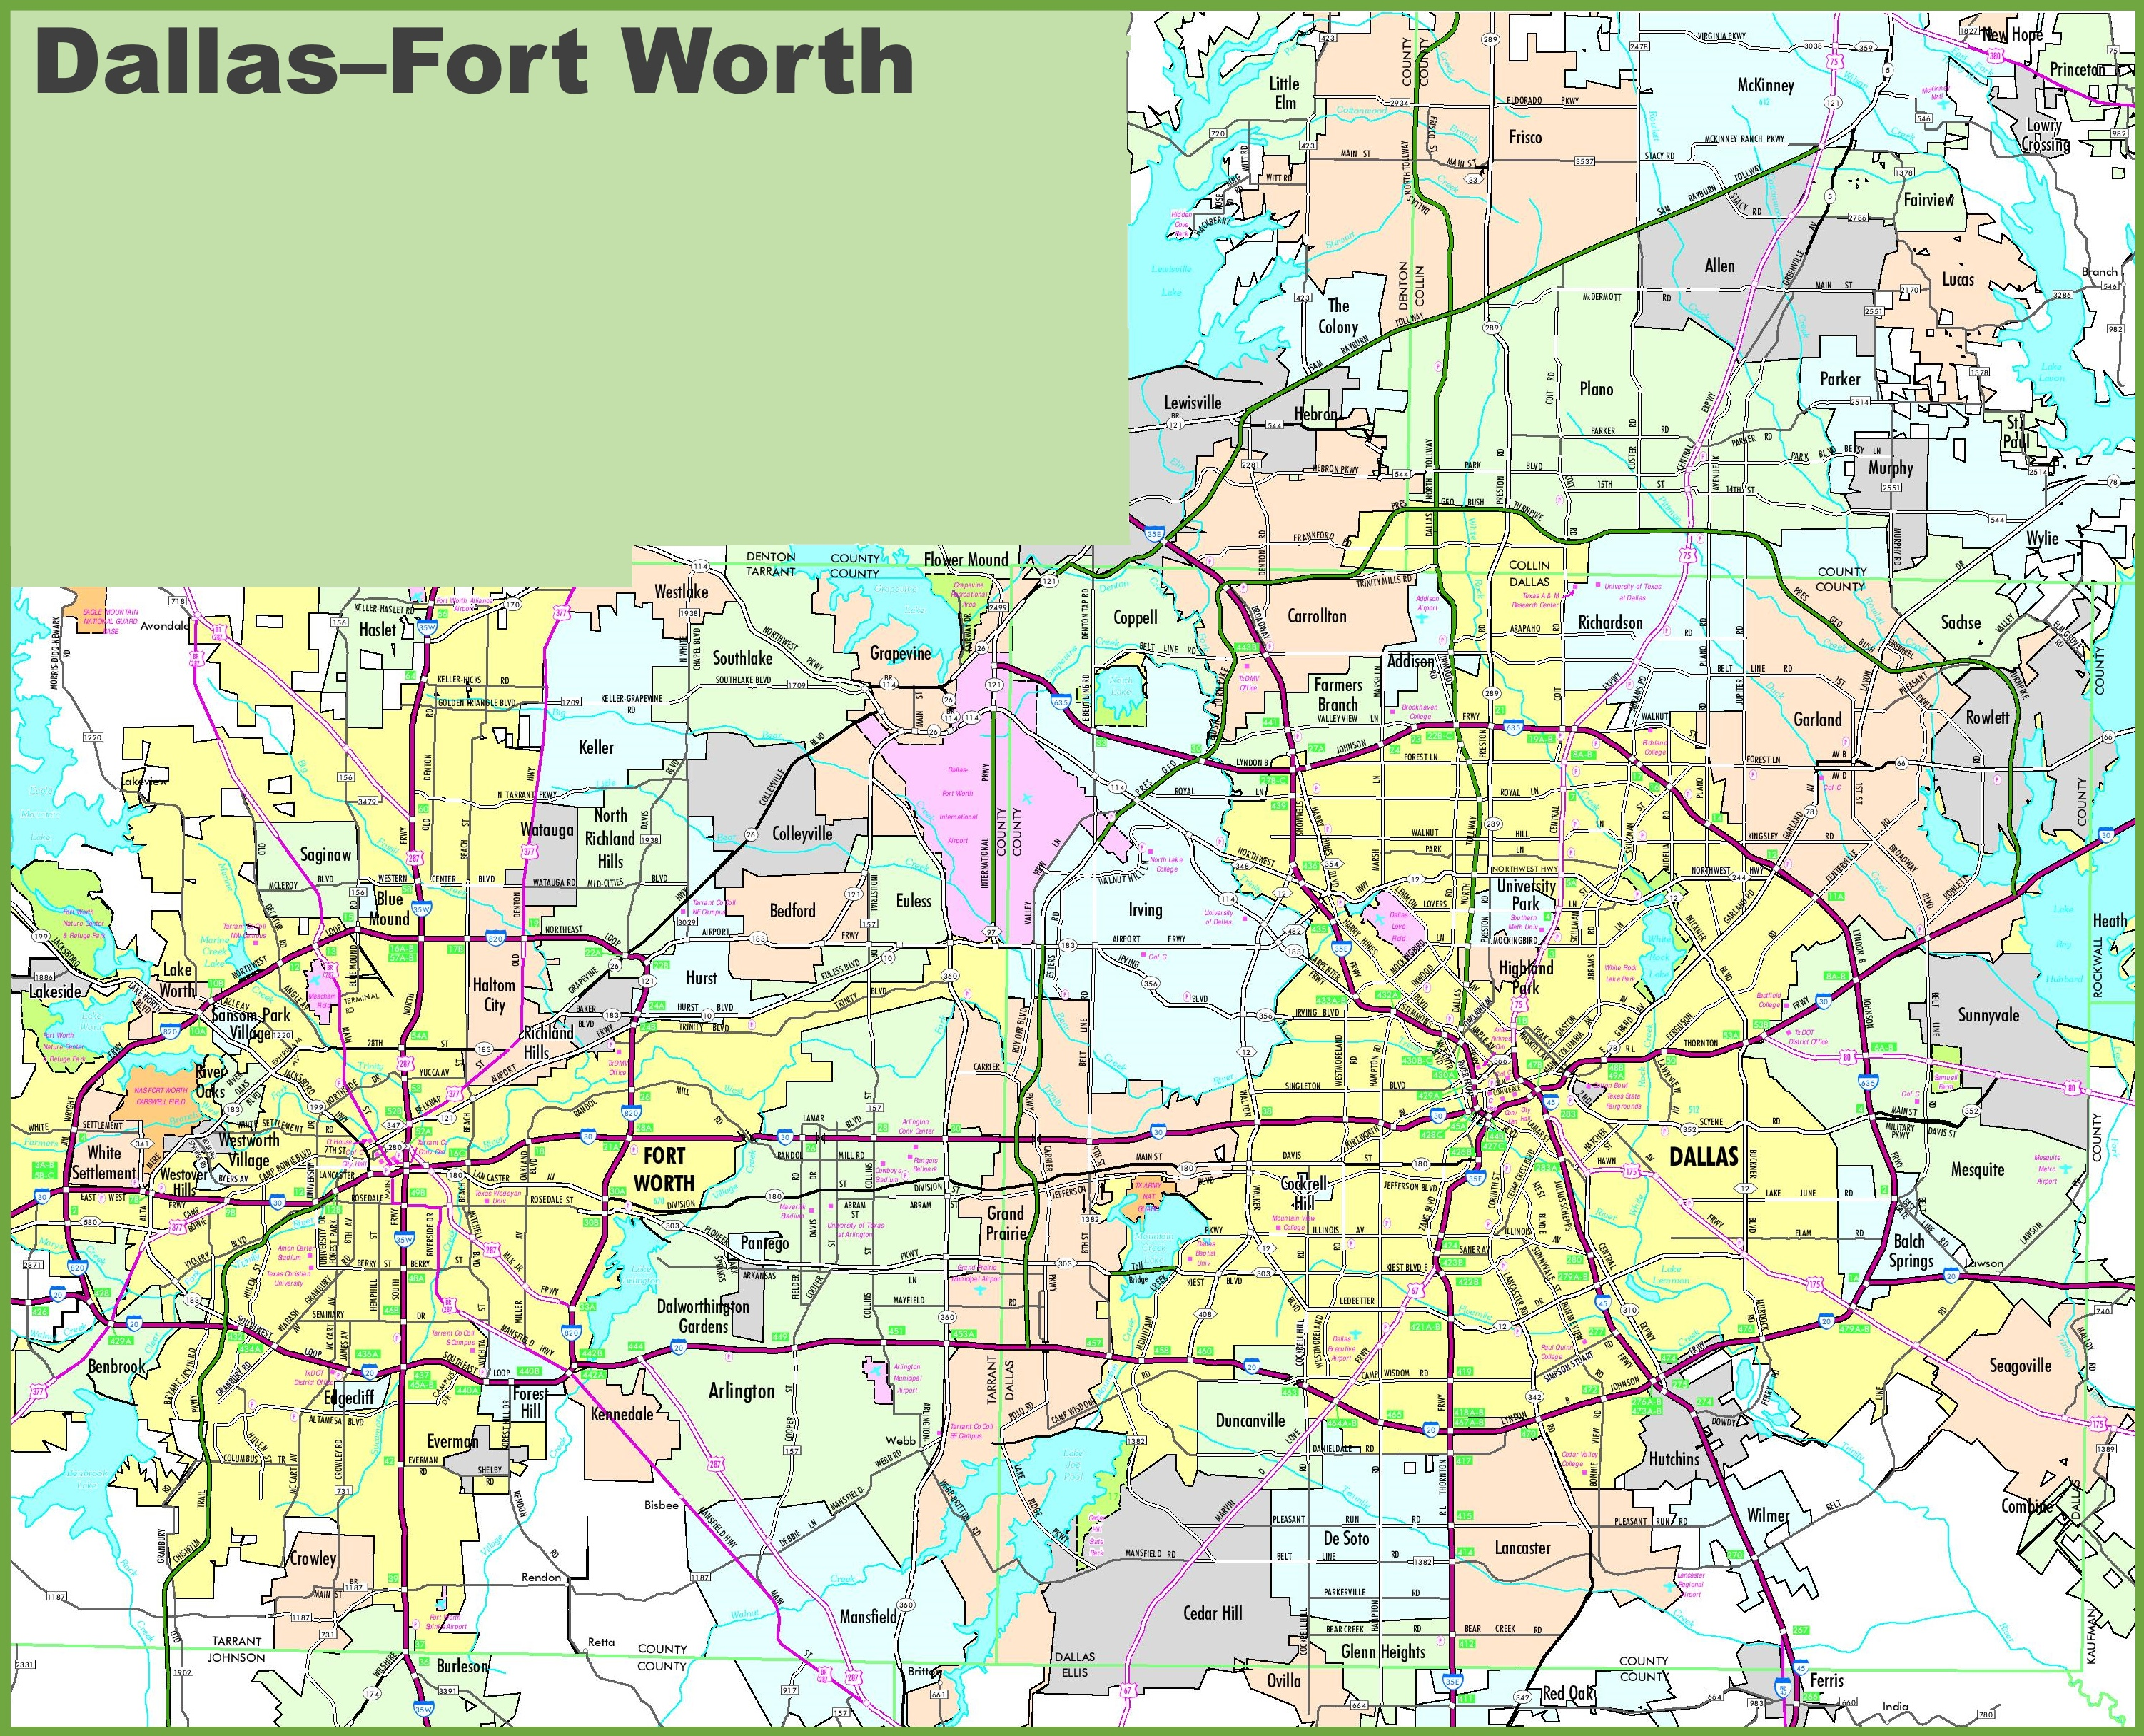 dallas area map dallas area road map dallas area road map dallas